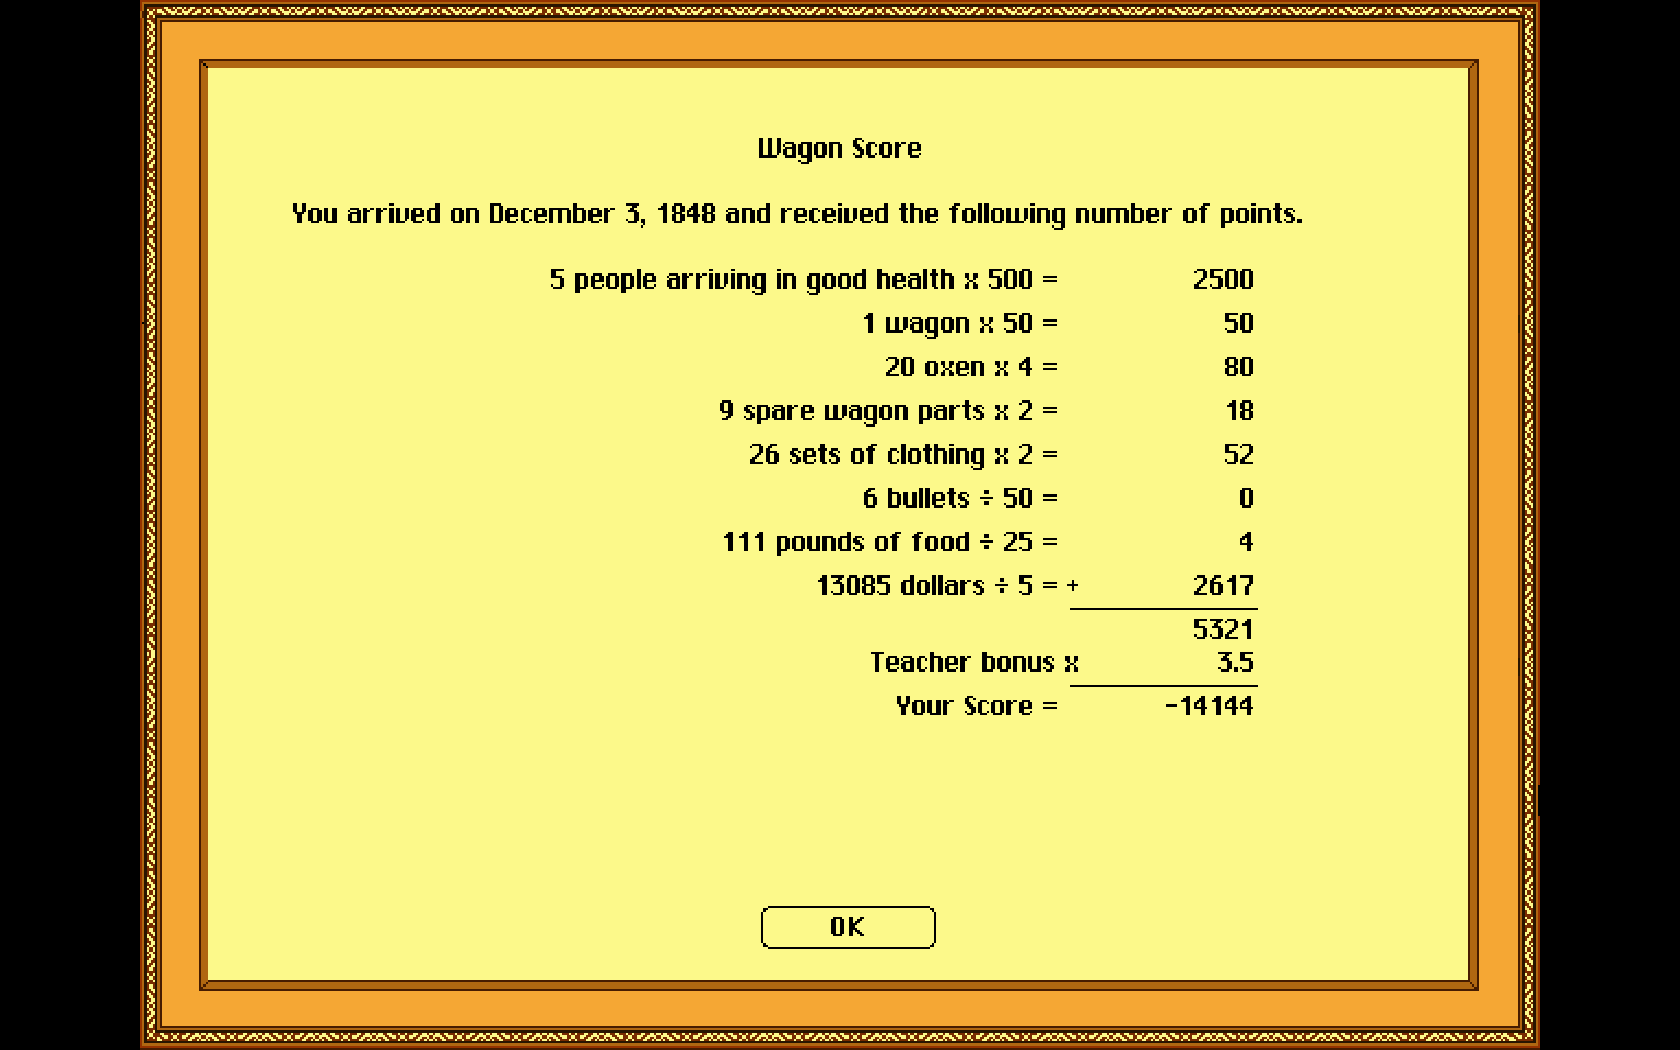 JamesGeddes: The Oregon Trail Deluxe (PC Emulated / DOSBox) 18,623 points on 2018-07-11 16:36:42